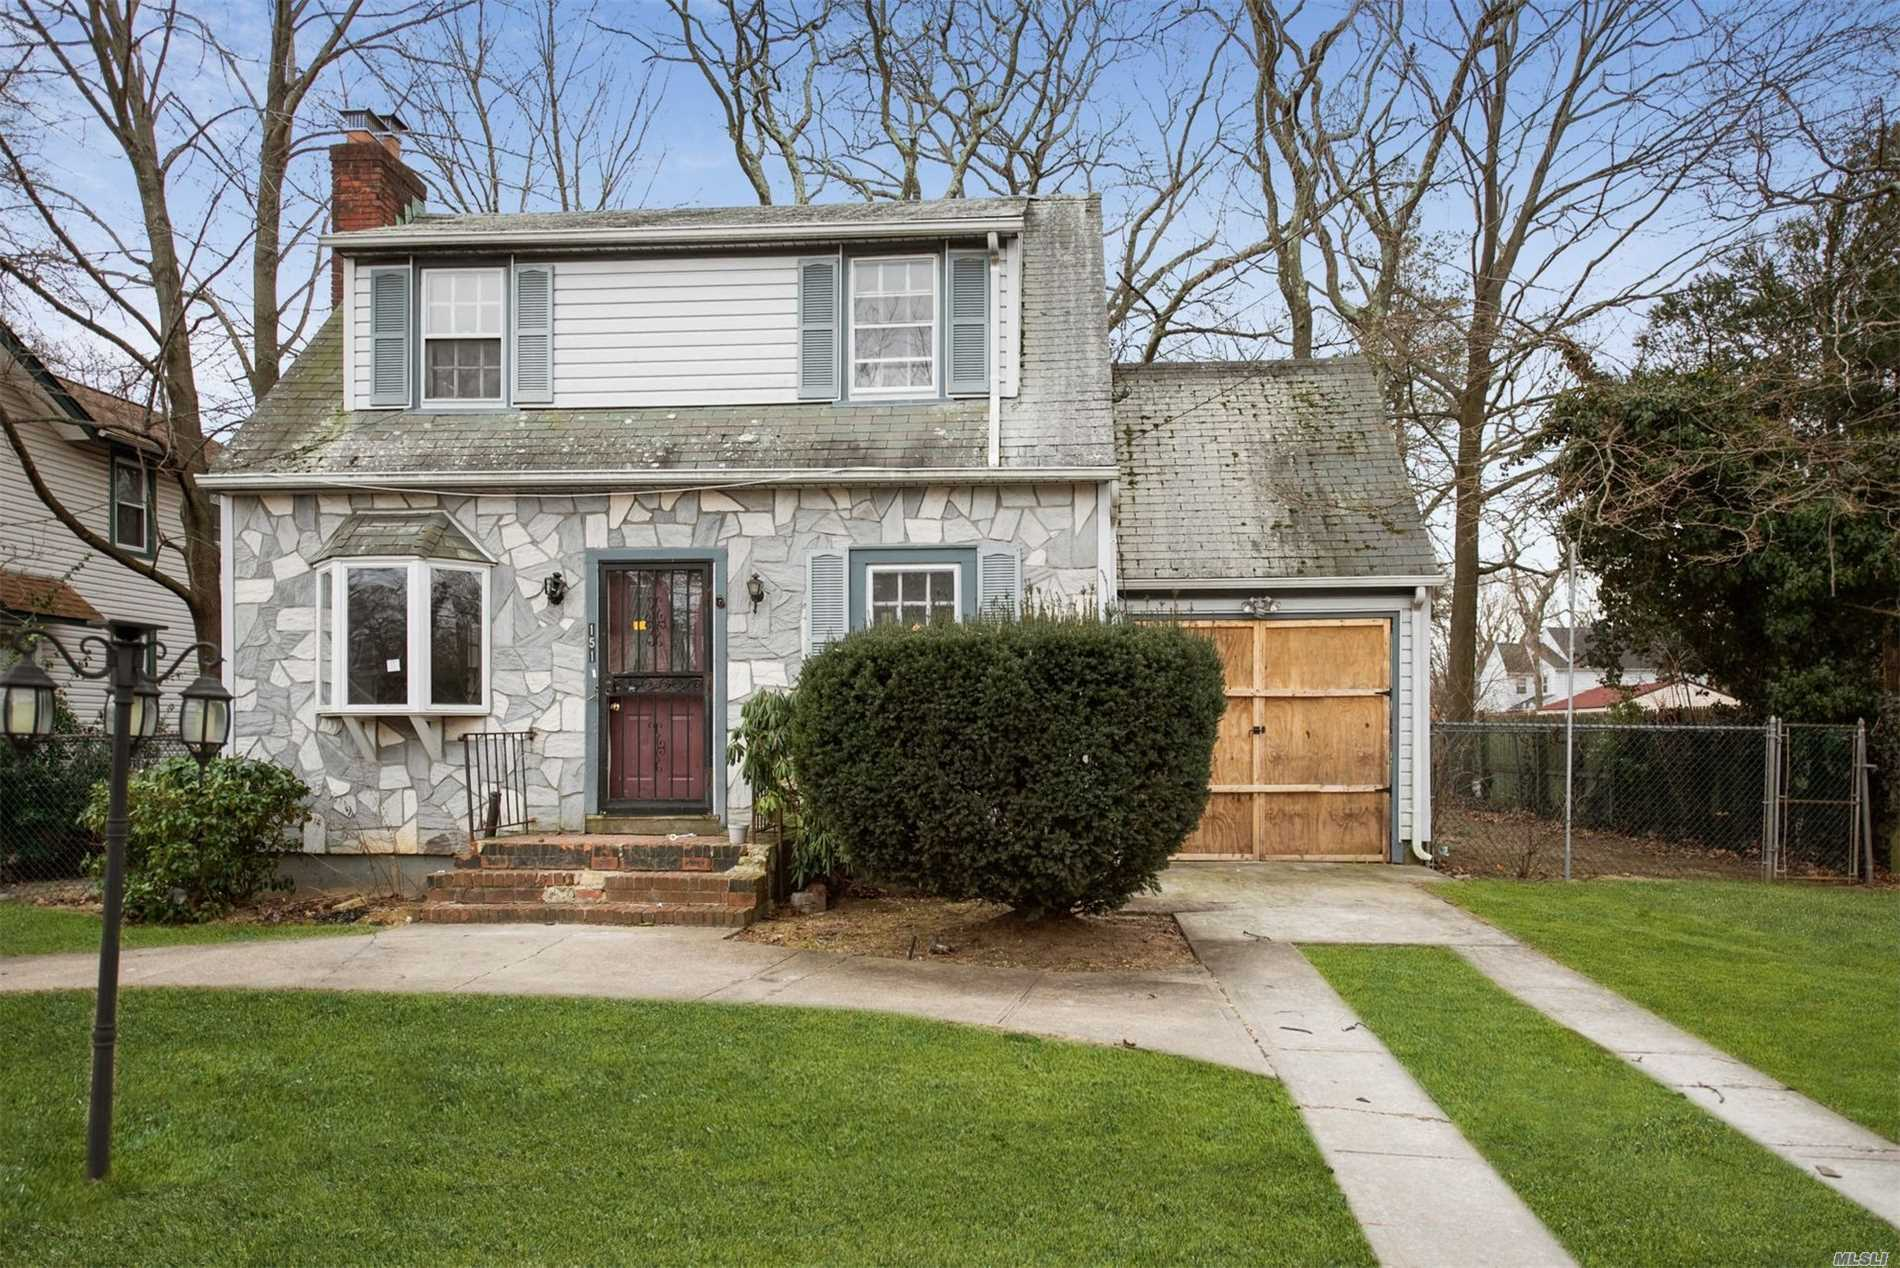 Sweet, Charming Cape Style Home On Quiet Mid-Block Location Needs Your TLC To Make It Home Sweet Home Again! Hardwood Floors Throughout The Home, Wood Burning Fireplace In Living Room & A Formal Dining Room. 3 Bedrooms All Located On The 2nd Floor W/ A Full Bath. Full Basement & Attached Garage For Ample Space/Storage. Come & See The Potential!